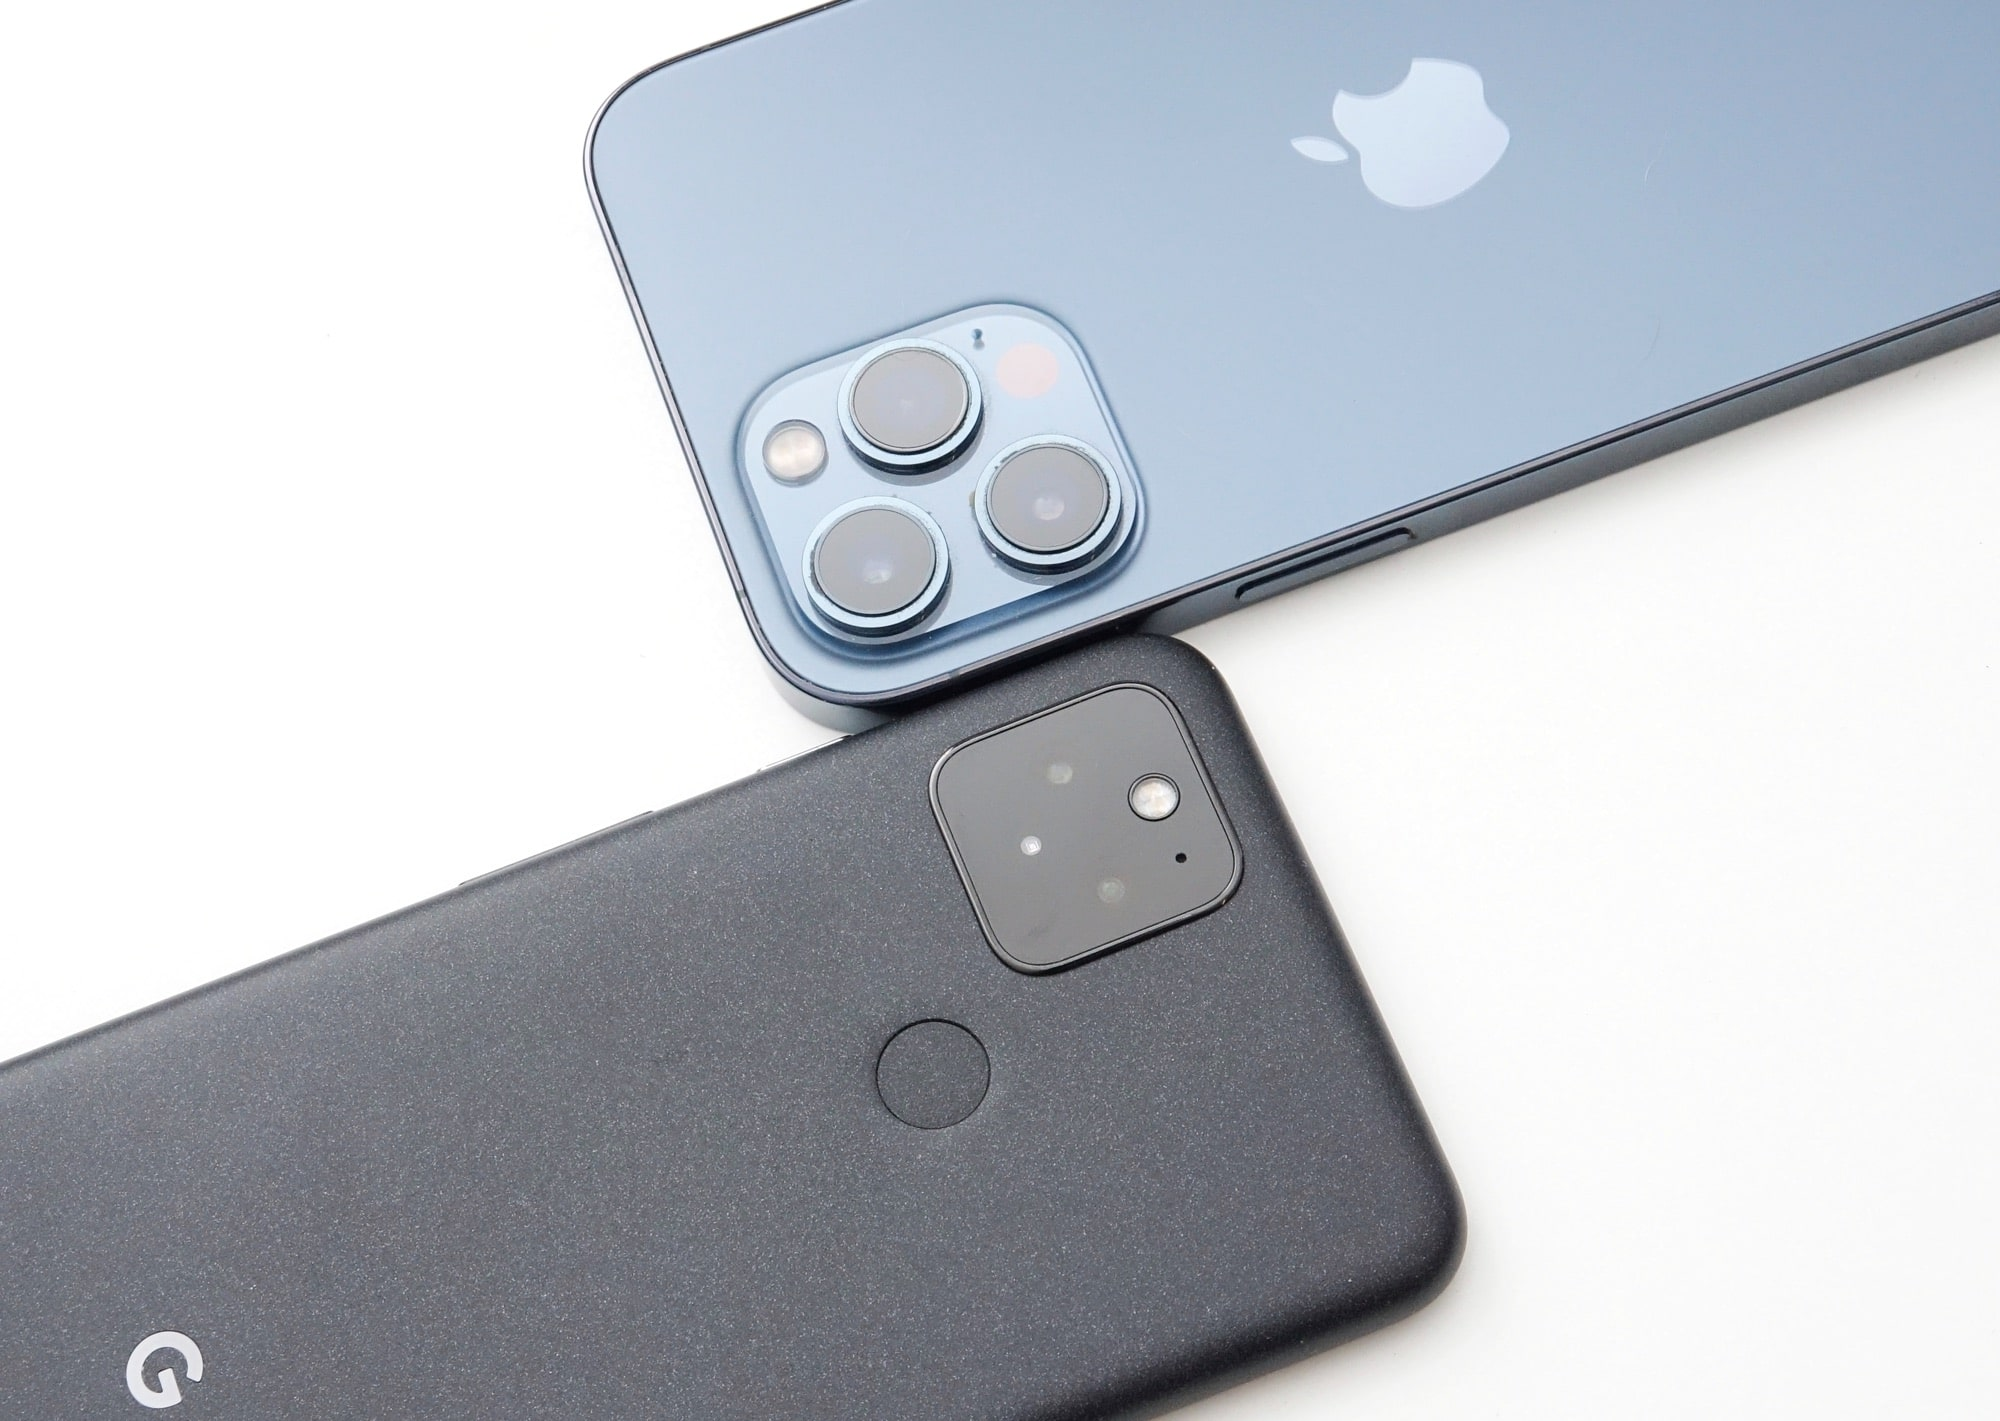 Head to head: the Google Pixel 5 (left) vs the Apple iPhone 12 Pro Max (right)